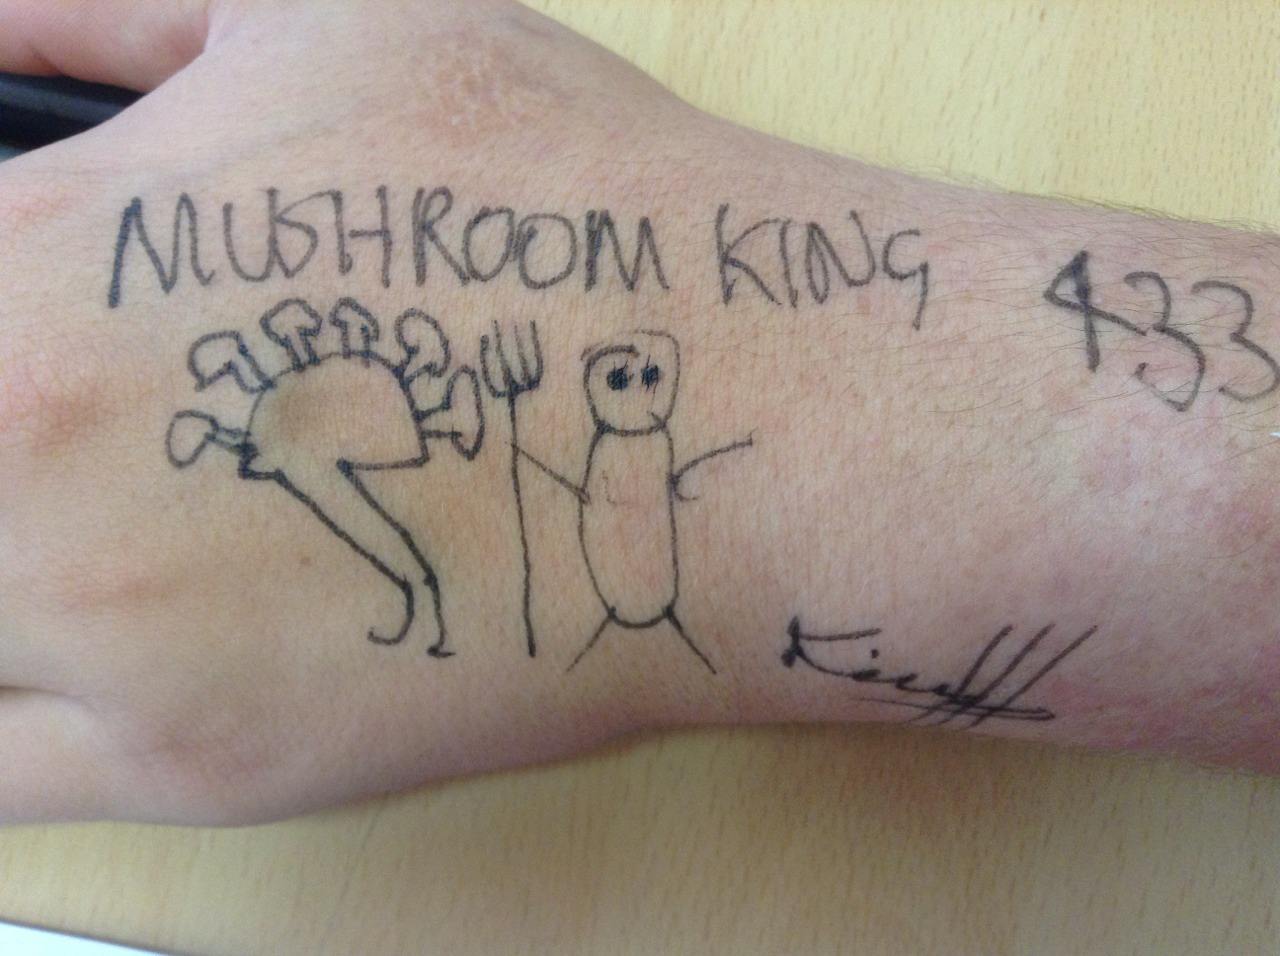 """Mushroom King 433"". Pen on llama ankle, 1829. Donated by His Royal Highness Mushroom King. Message from His Royal Highness Mushroom King:  ""This photograph depicts Merrill, who was, at the time, pregnant with sextuplets. It should be noted that Hubert chose to draw this photograph on a llama ankle due to the shortage of business cards in the area during the time. Hubert was always the sensible, resourceful one among us; he was always able to make things happen using only the materials at hand."""